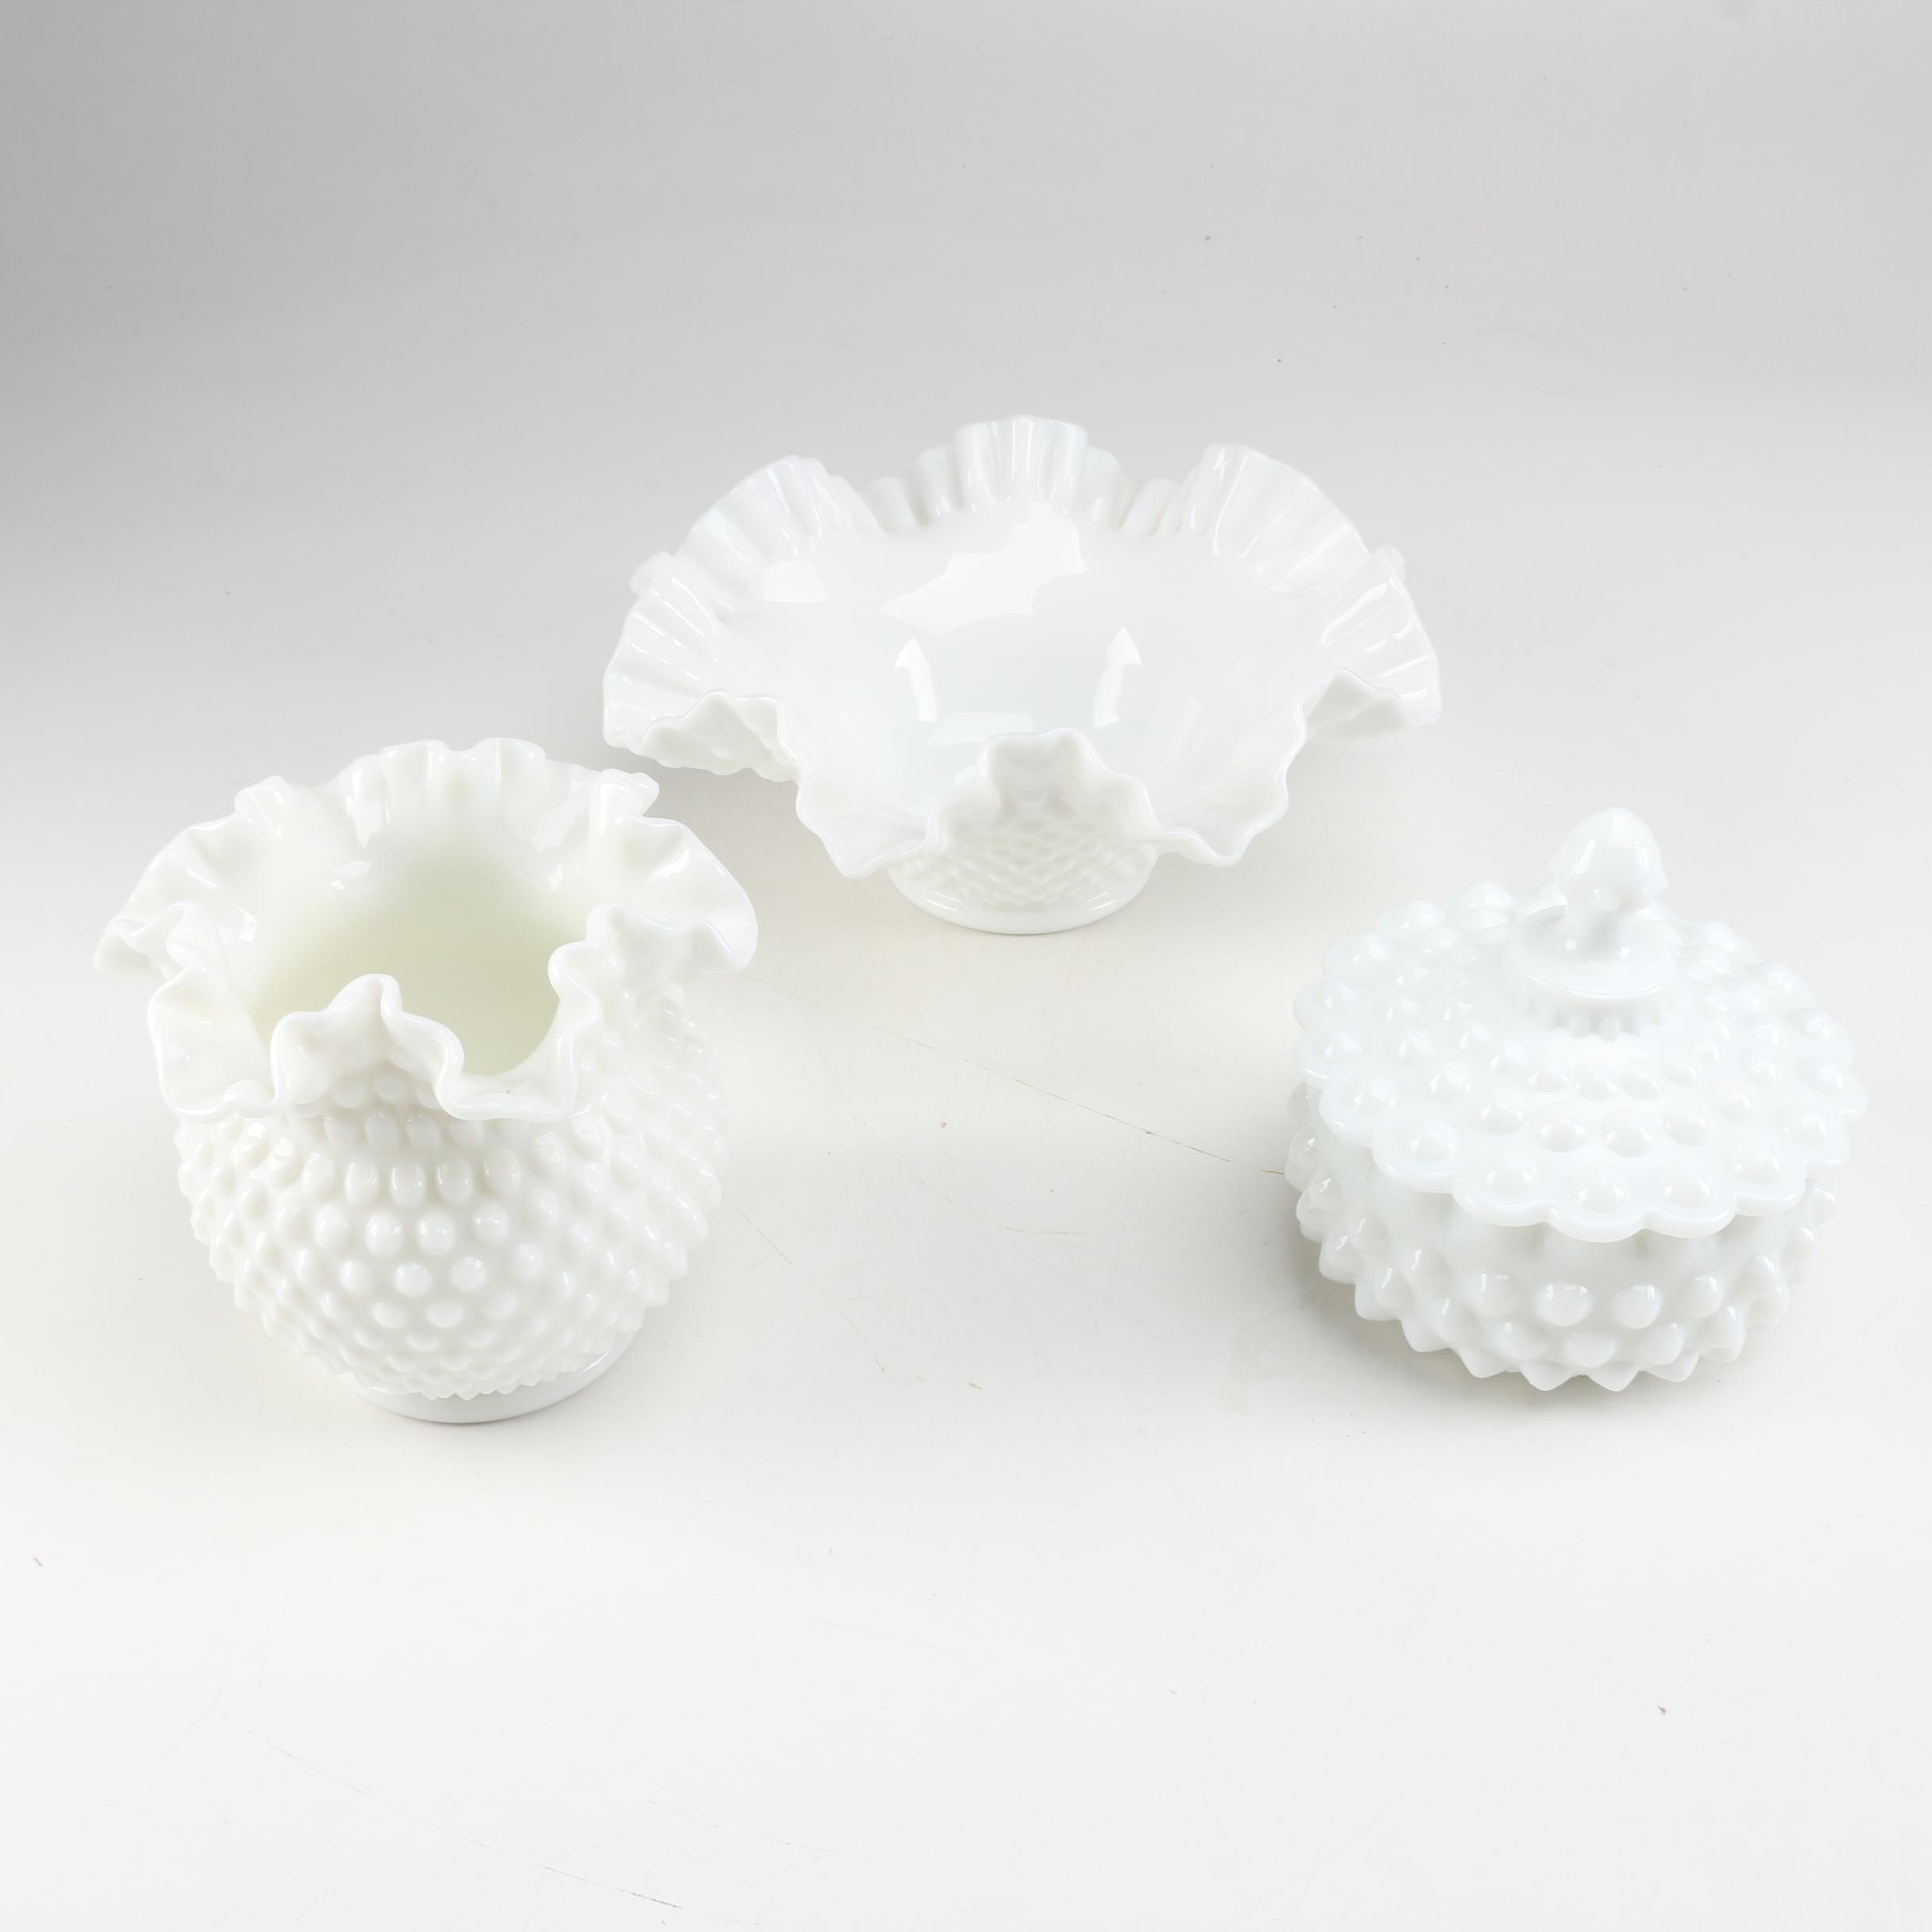 Vintage Hobnail Milk Glass Vase, Decorative Bowl and Trinket Dish